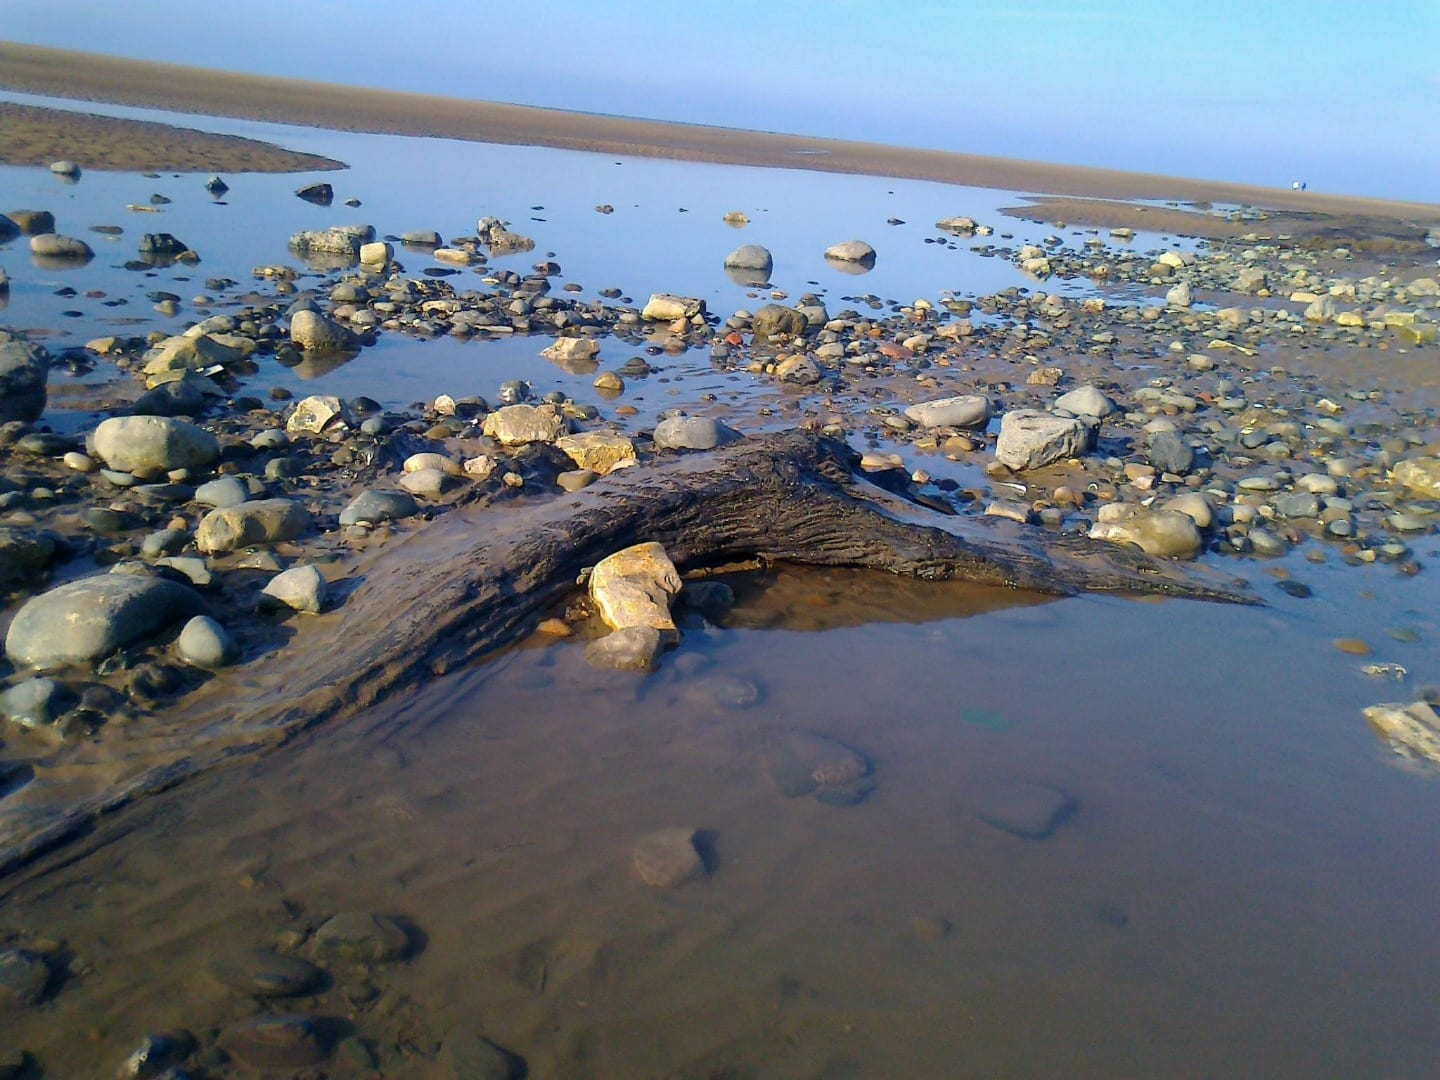 tree stumps from the petrified forest on Cleveleys beach, photo: Andy Ball